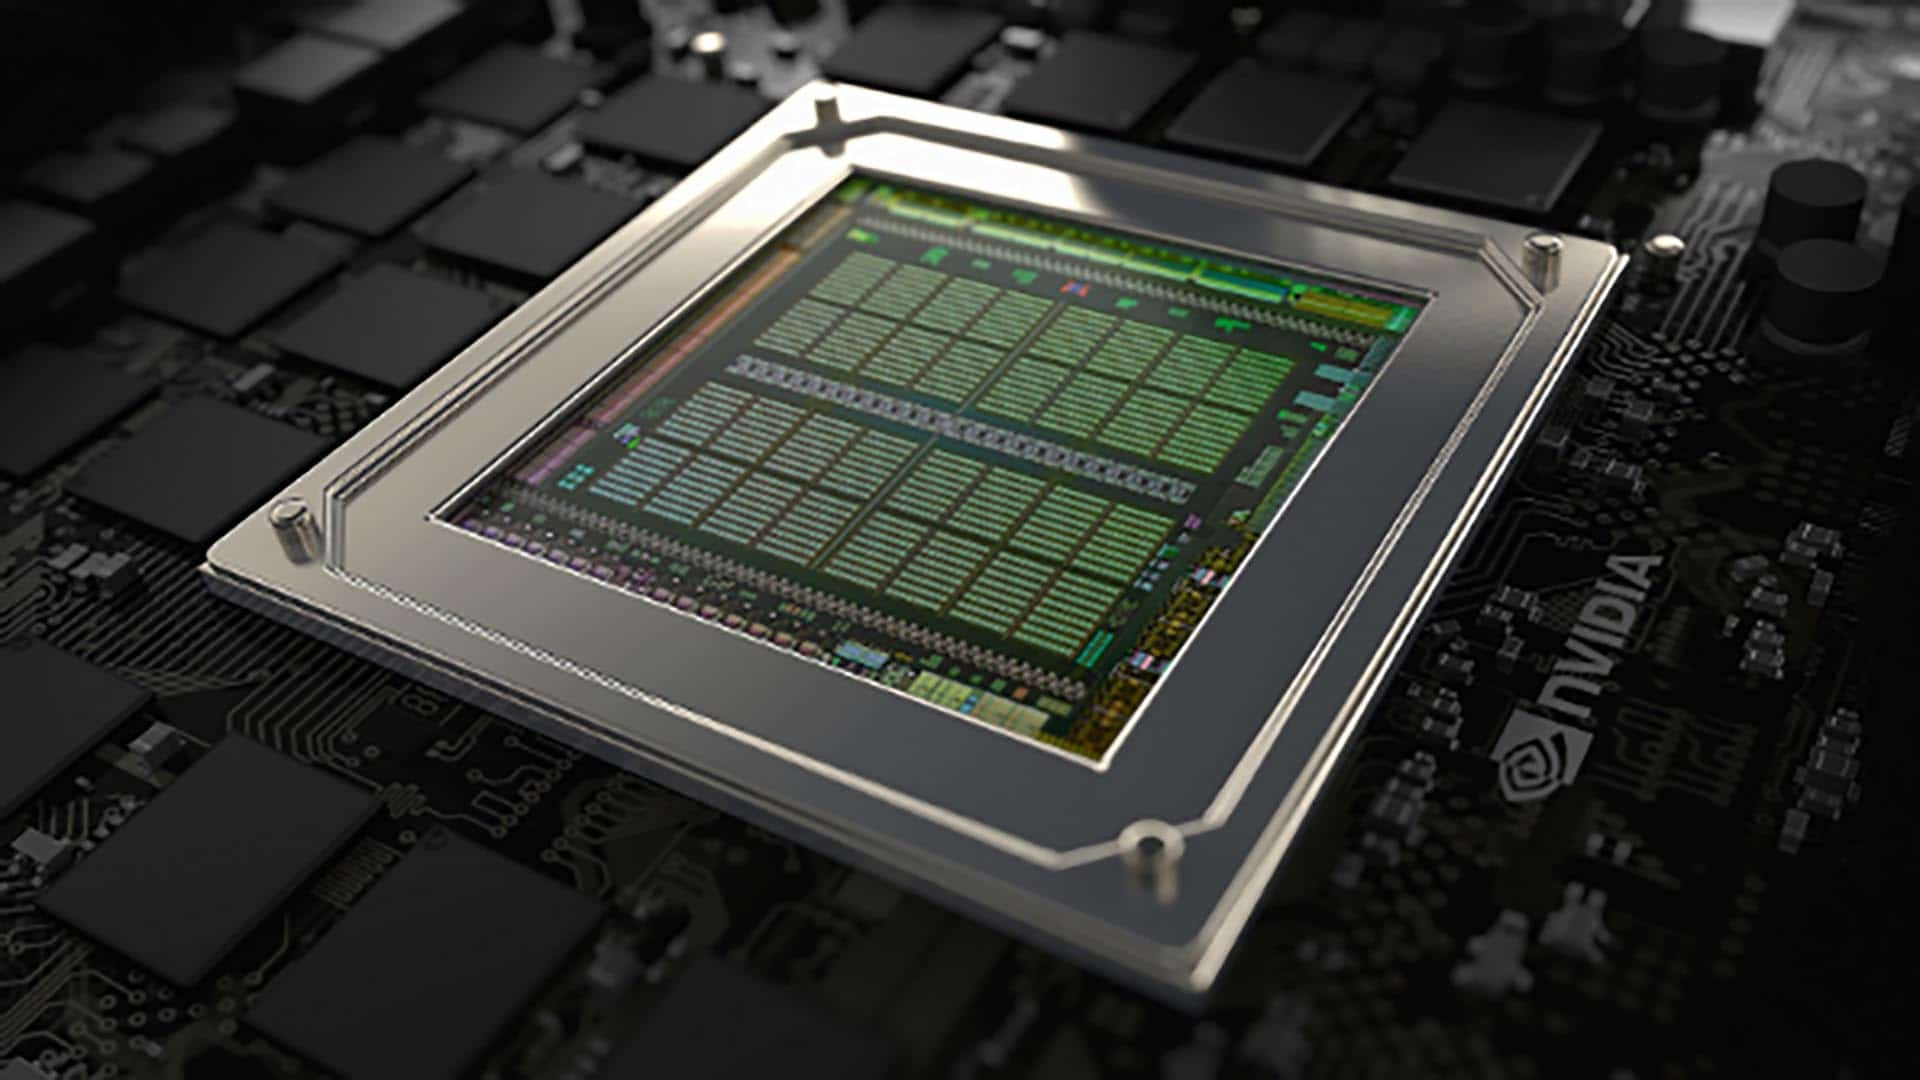 Nvidia leak suggests SUPER mobile GPUs to face Intel and AMD in 2020